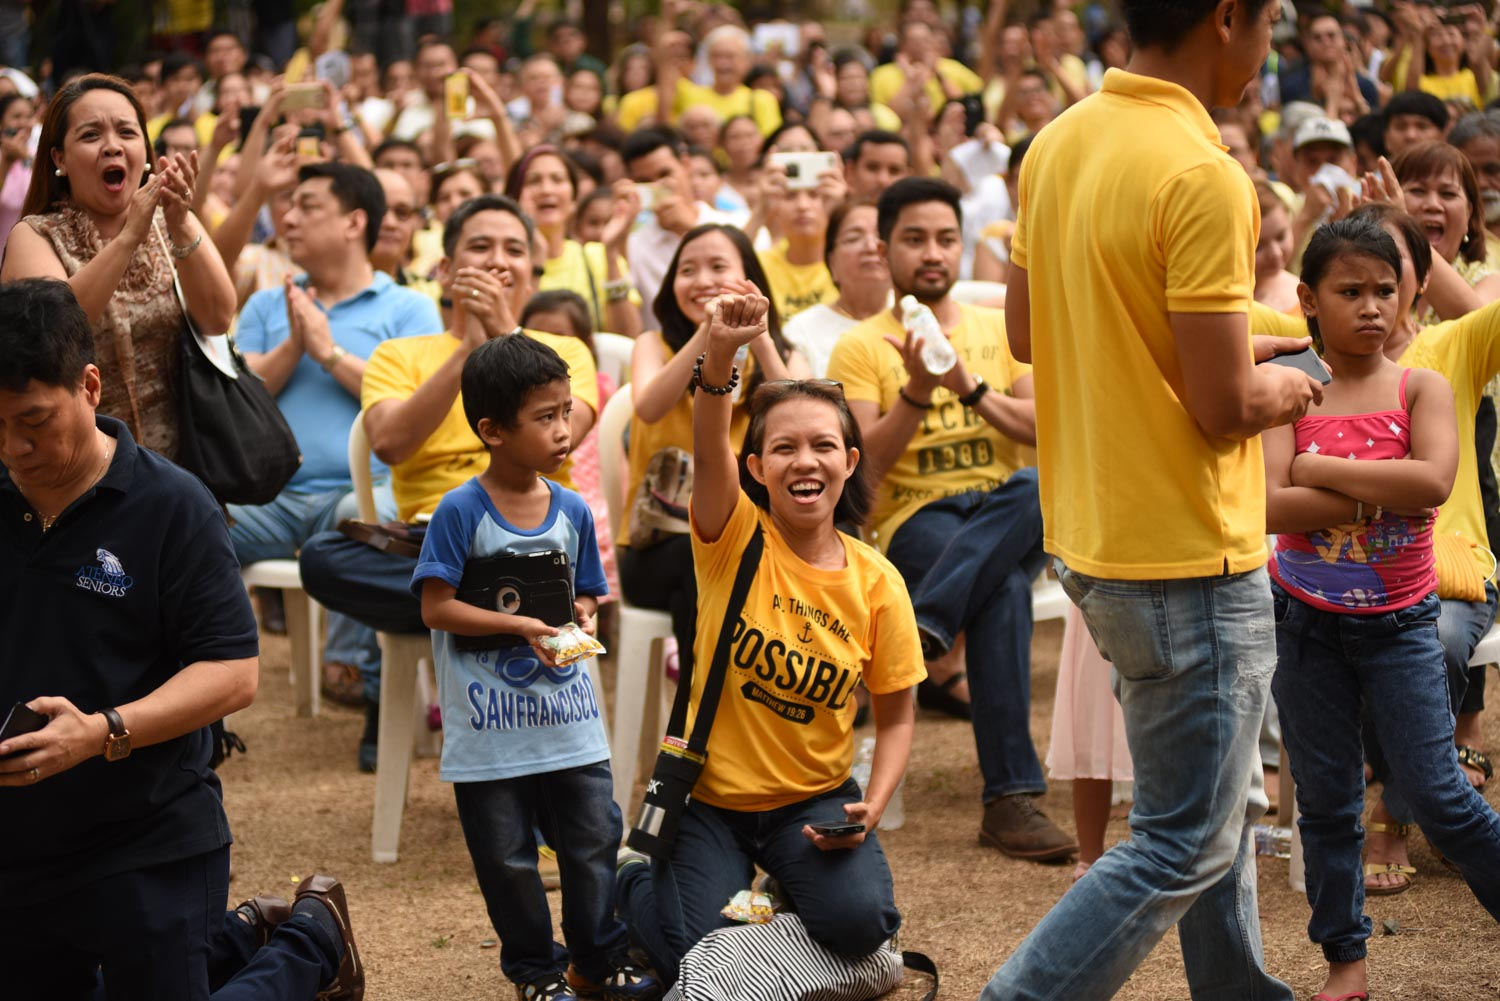 Robredo's supporters gather at the Ateneo de Manila University on Sunday, May 15.